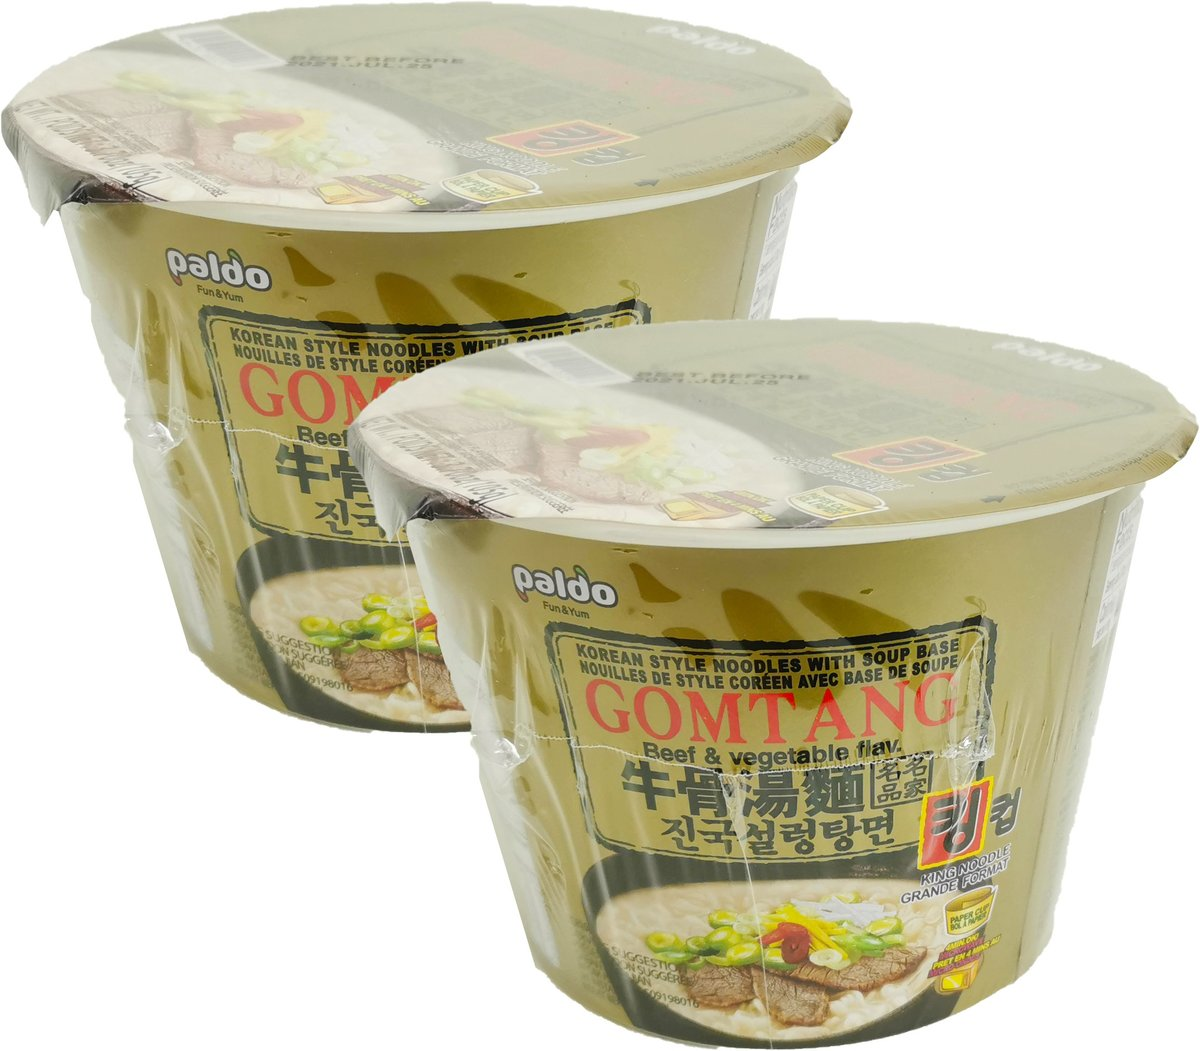 [Bowl] Korean Style Noodles with Soup Base (Beef & Vegetable Flavor) (105g X 2)